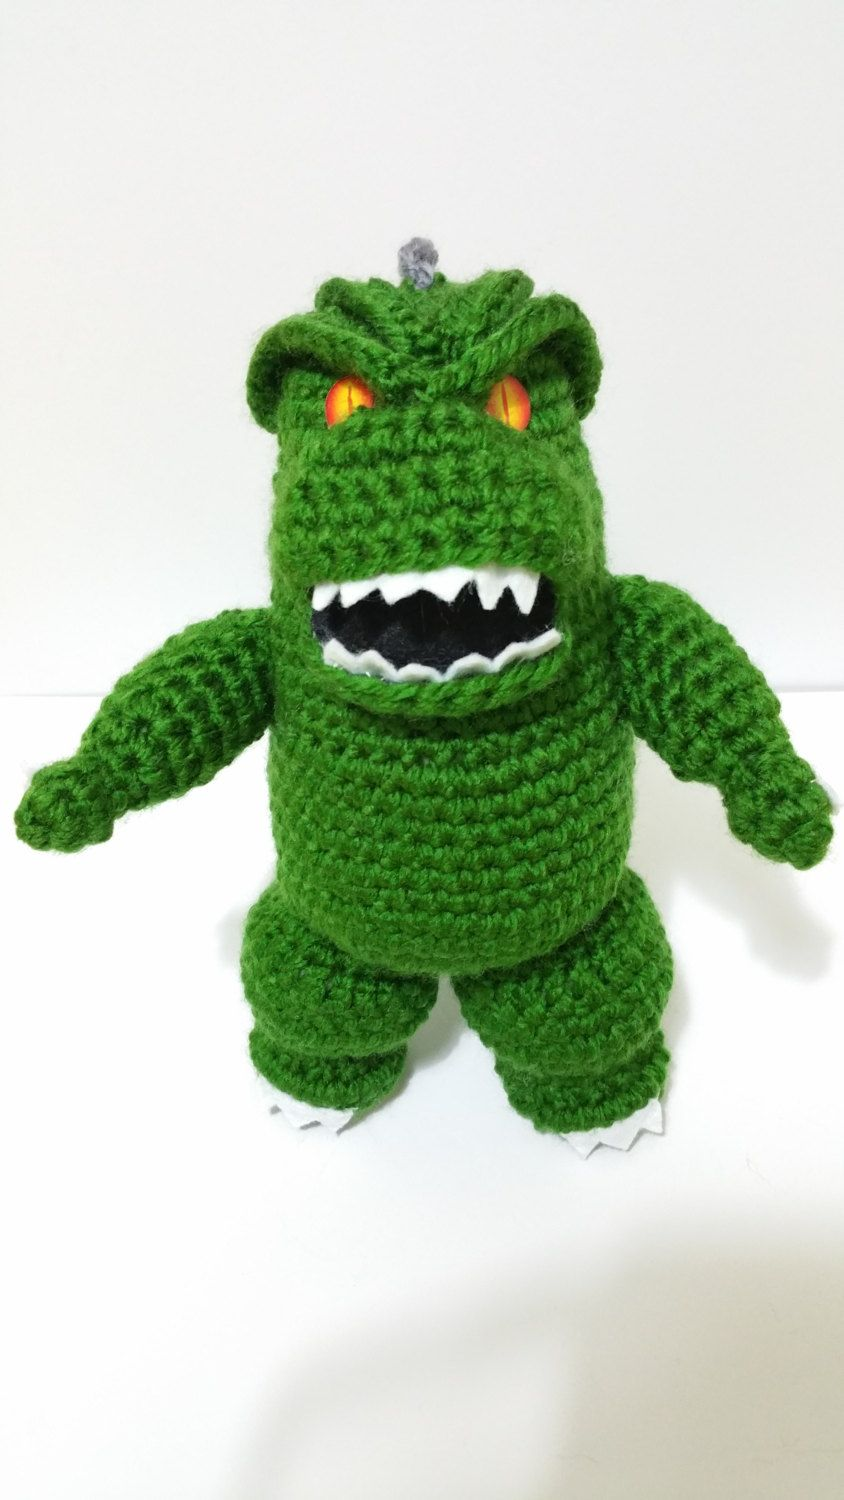 Godzilla plush cthulhu 8 inch japan nuclear horror movie scary godzilla plush cthulhu 8 inch japan nuclear horror movie scary horror amazing crochet doll 2014 remake godzilla horror cthulhu amigurumi geek crochet bankloansurffo Choice Image